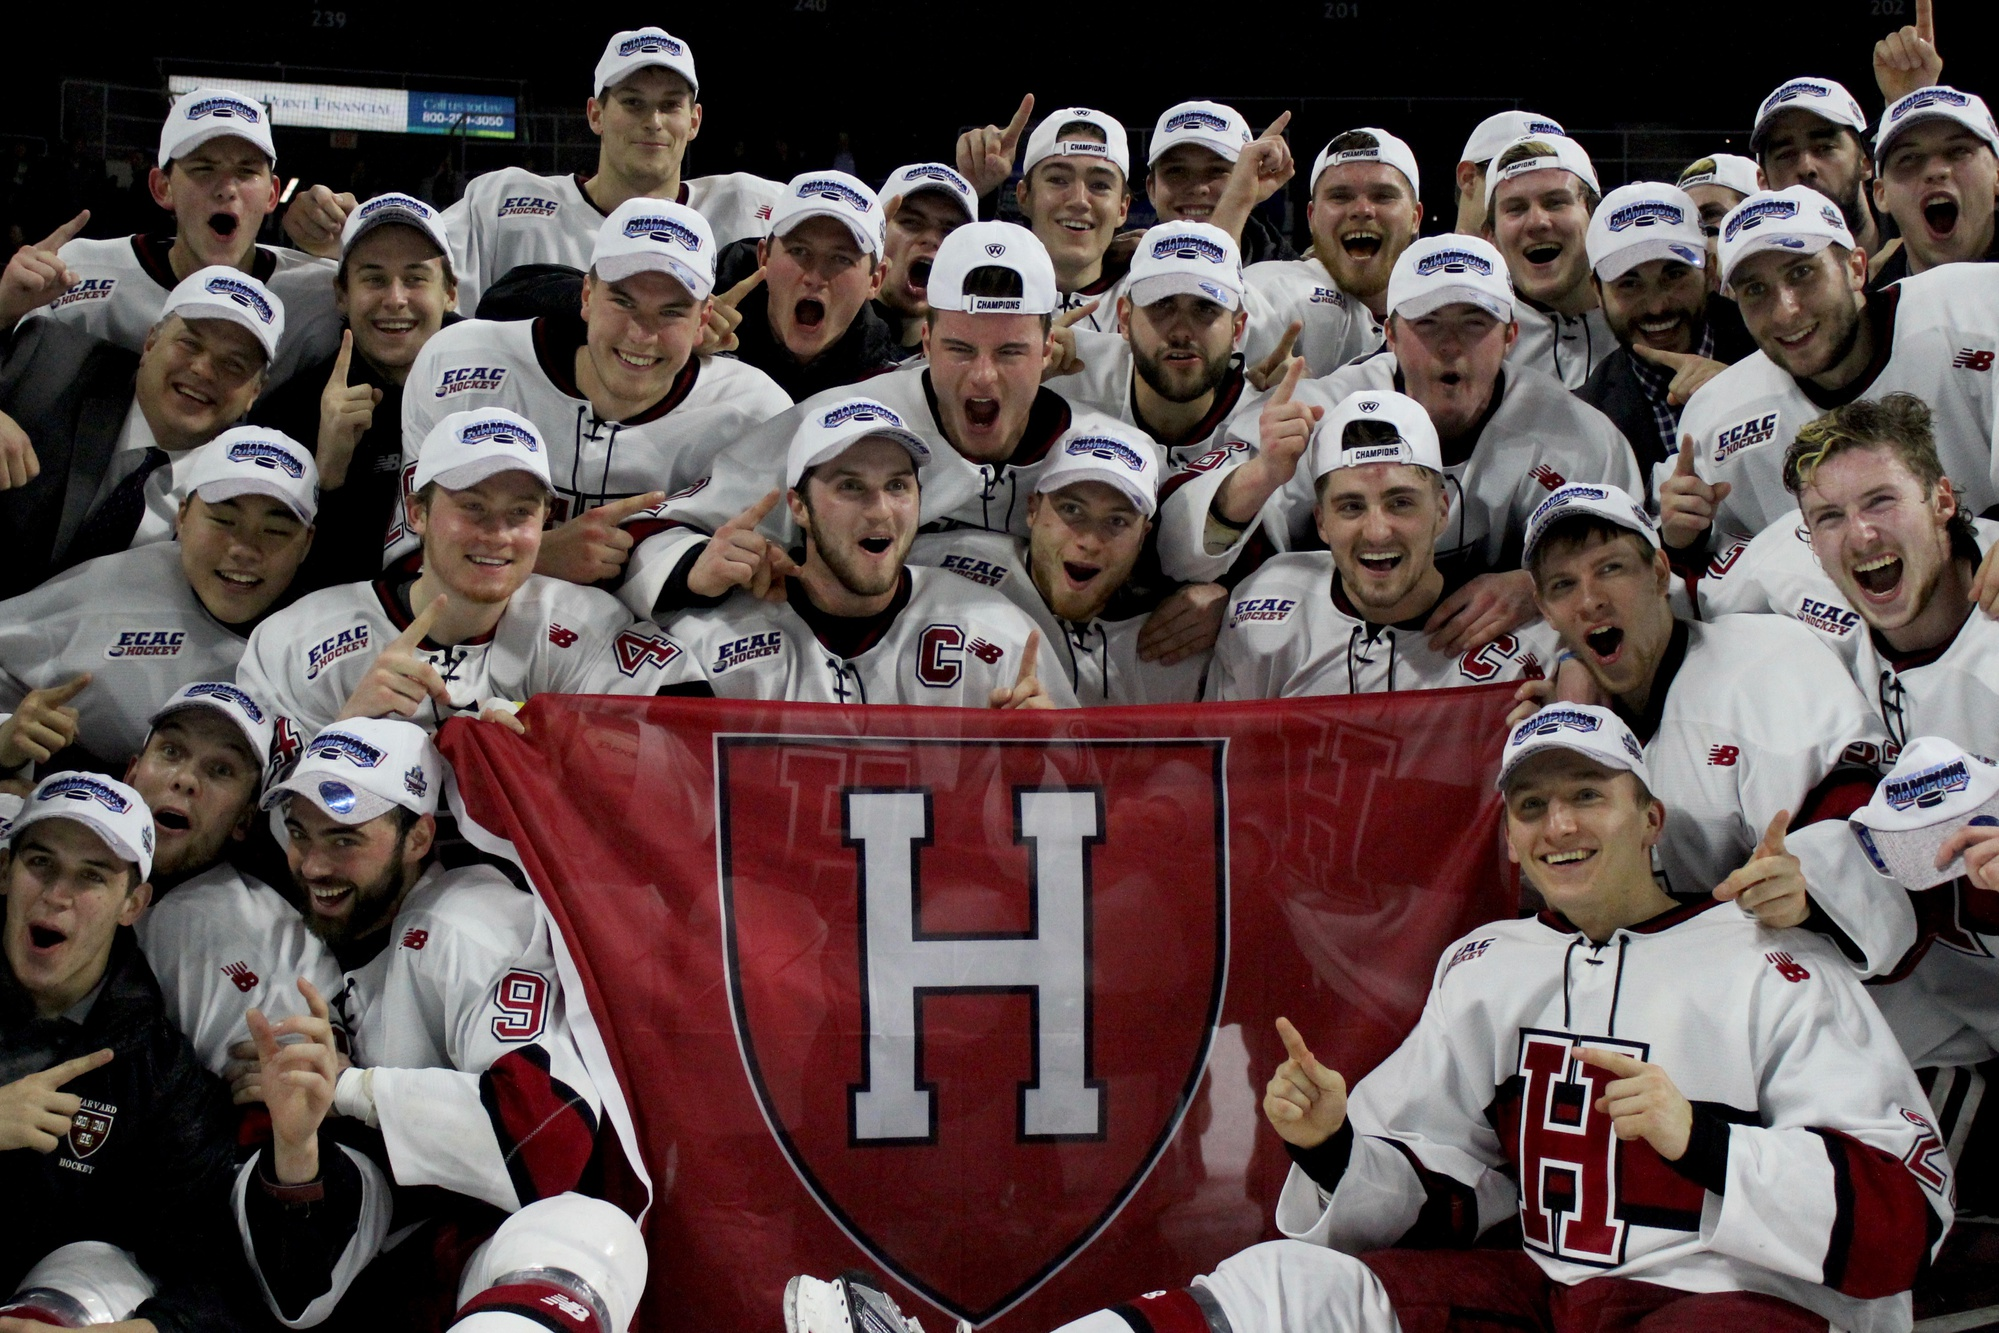 The men's hockey team celebrates after clinching a spot in the Frozen Four with a 3-2 win over Air Force.